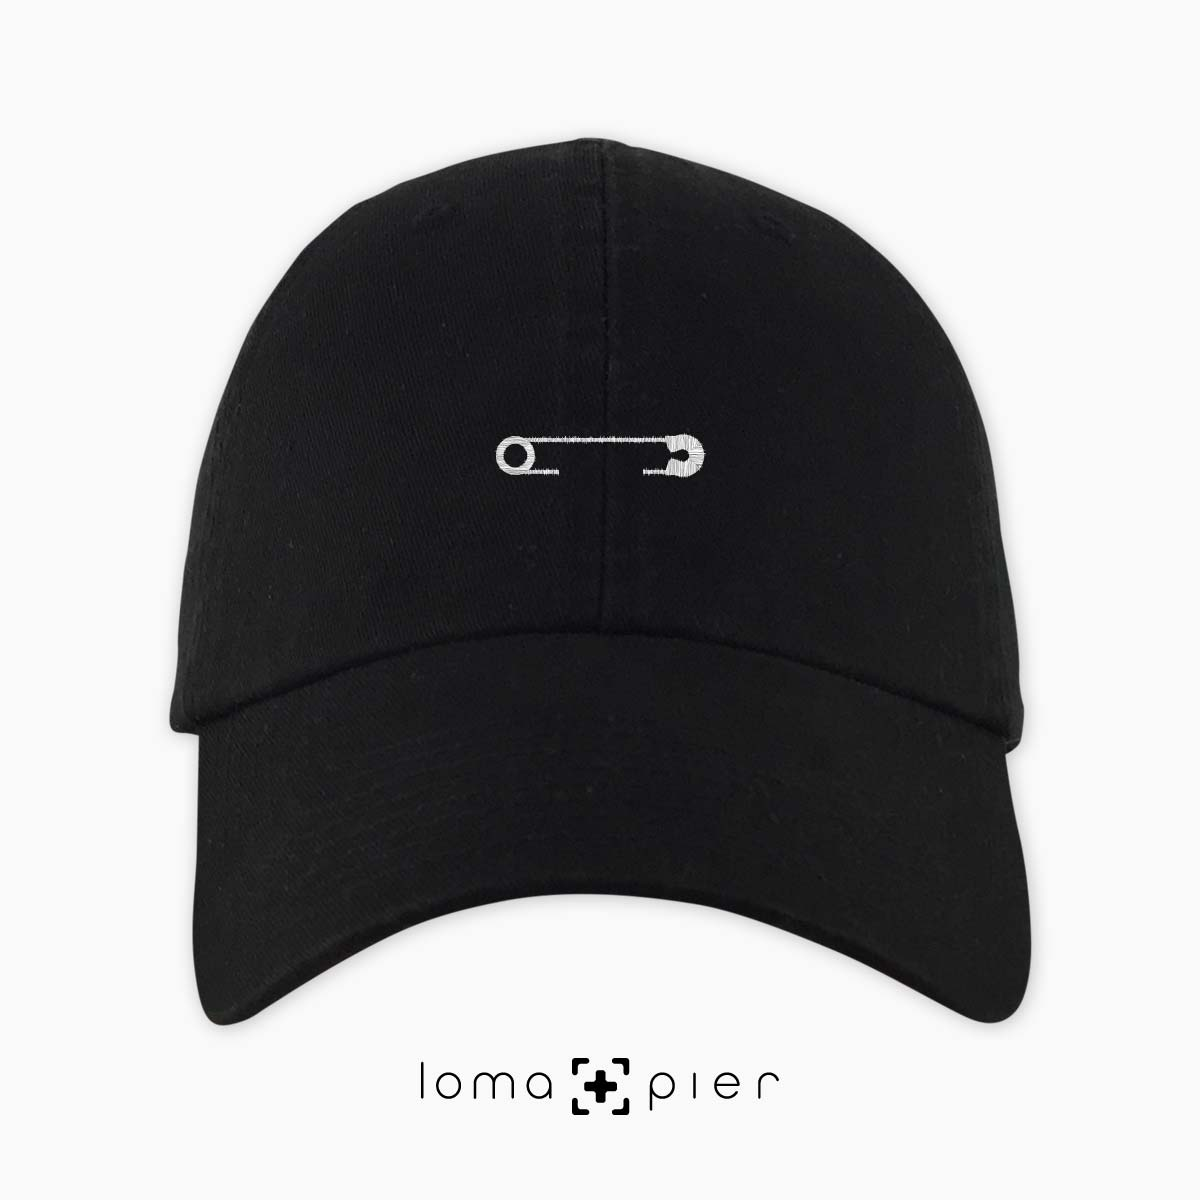 SAFETY PIN icon embroidered on a black unstructured dad hat with white  thread by loma+ 61396e4f3b2